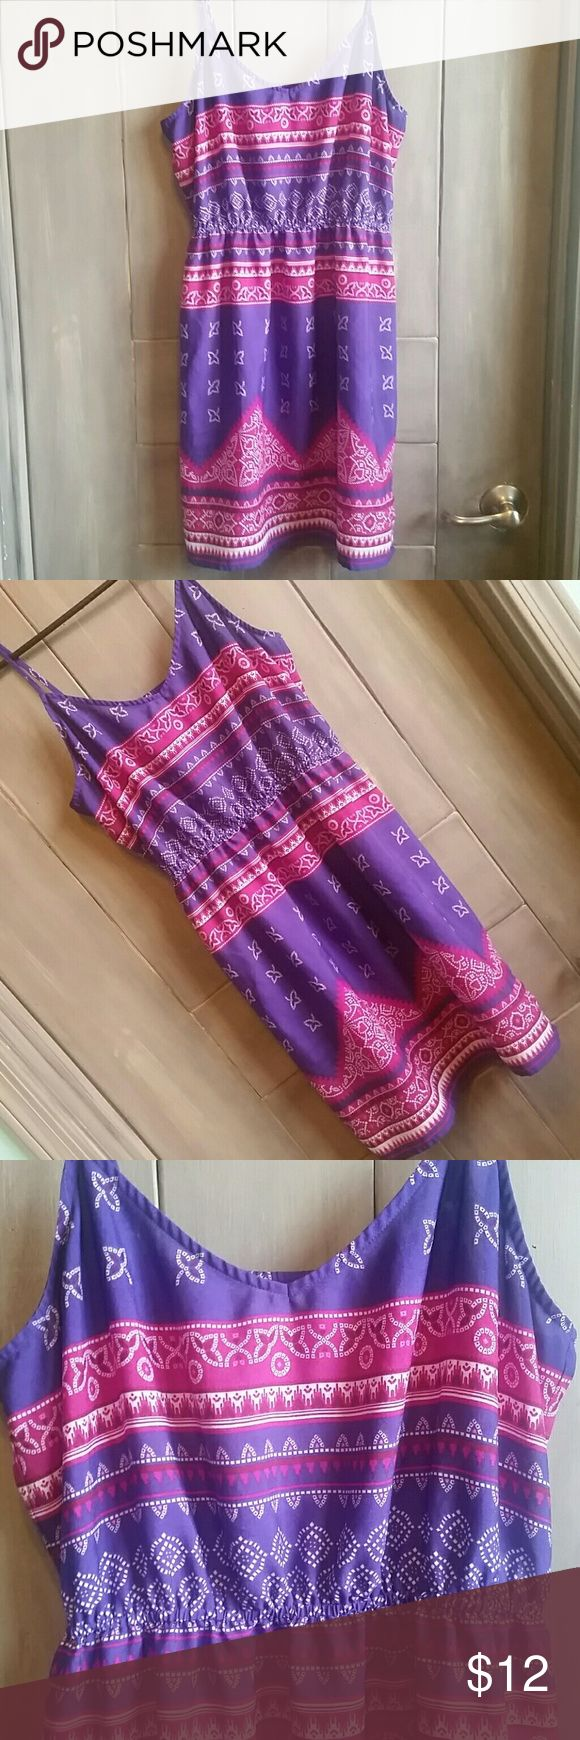 💘20% of 2 or more 💕 Purple and pink sundress with adjustable straps, like new condition!! Dresses